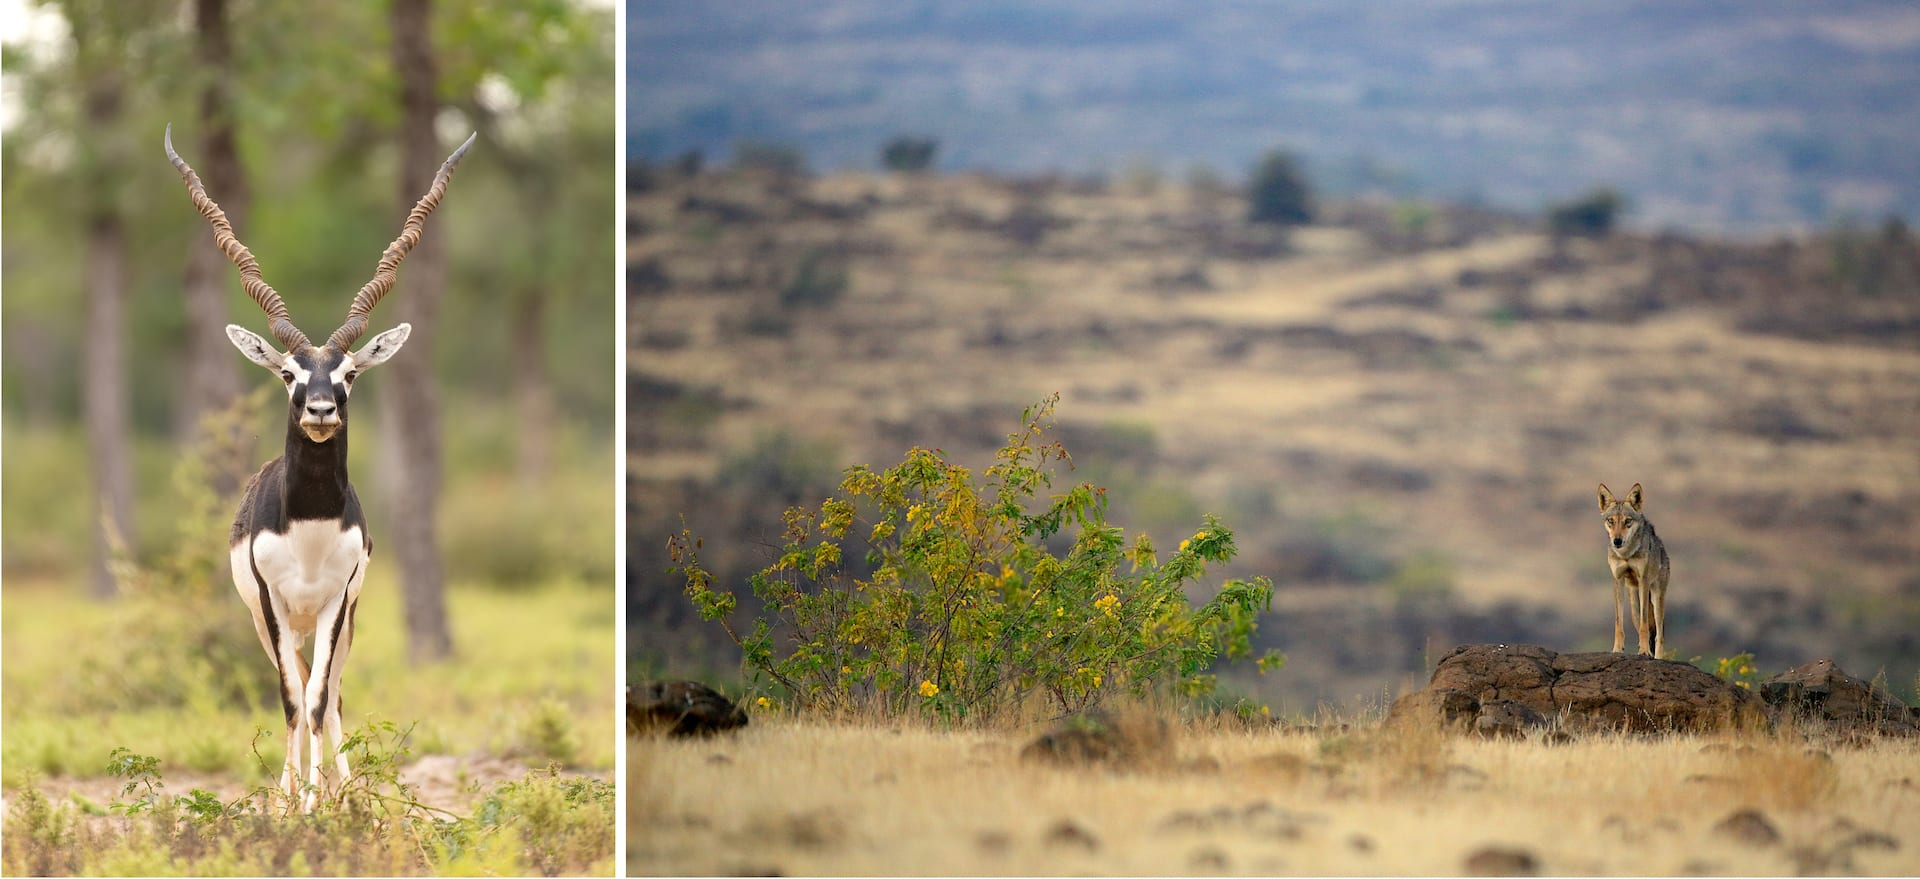 (Left) In Rajasthan, blackbucks prefer grasslands for the grazing opportunities they offer. For blackbucks to continue to survive this habitat needs to be protected. (Right) Indian wolves that have made their home in the Saswad grasslands on the outskirts of Pune, Maharashtra, face a perilous existence as they negotiate spaces encroached by humans.  Photos: Vipul Ramanuj (left), Mihir Godbole/The Grassland Trust (right)